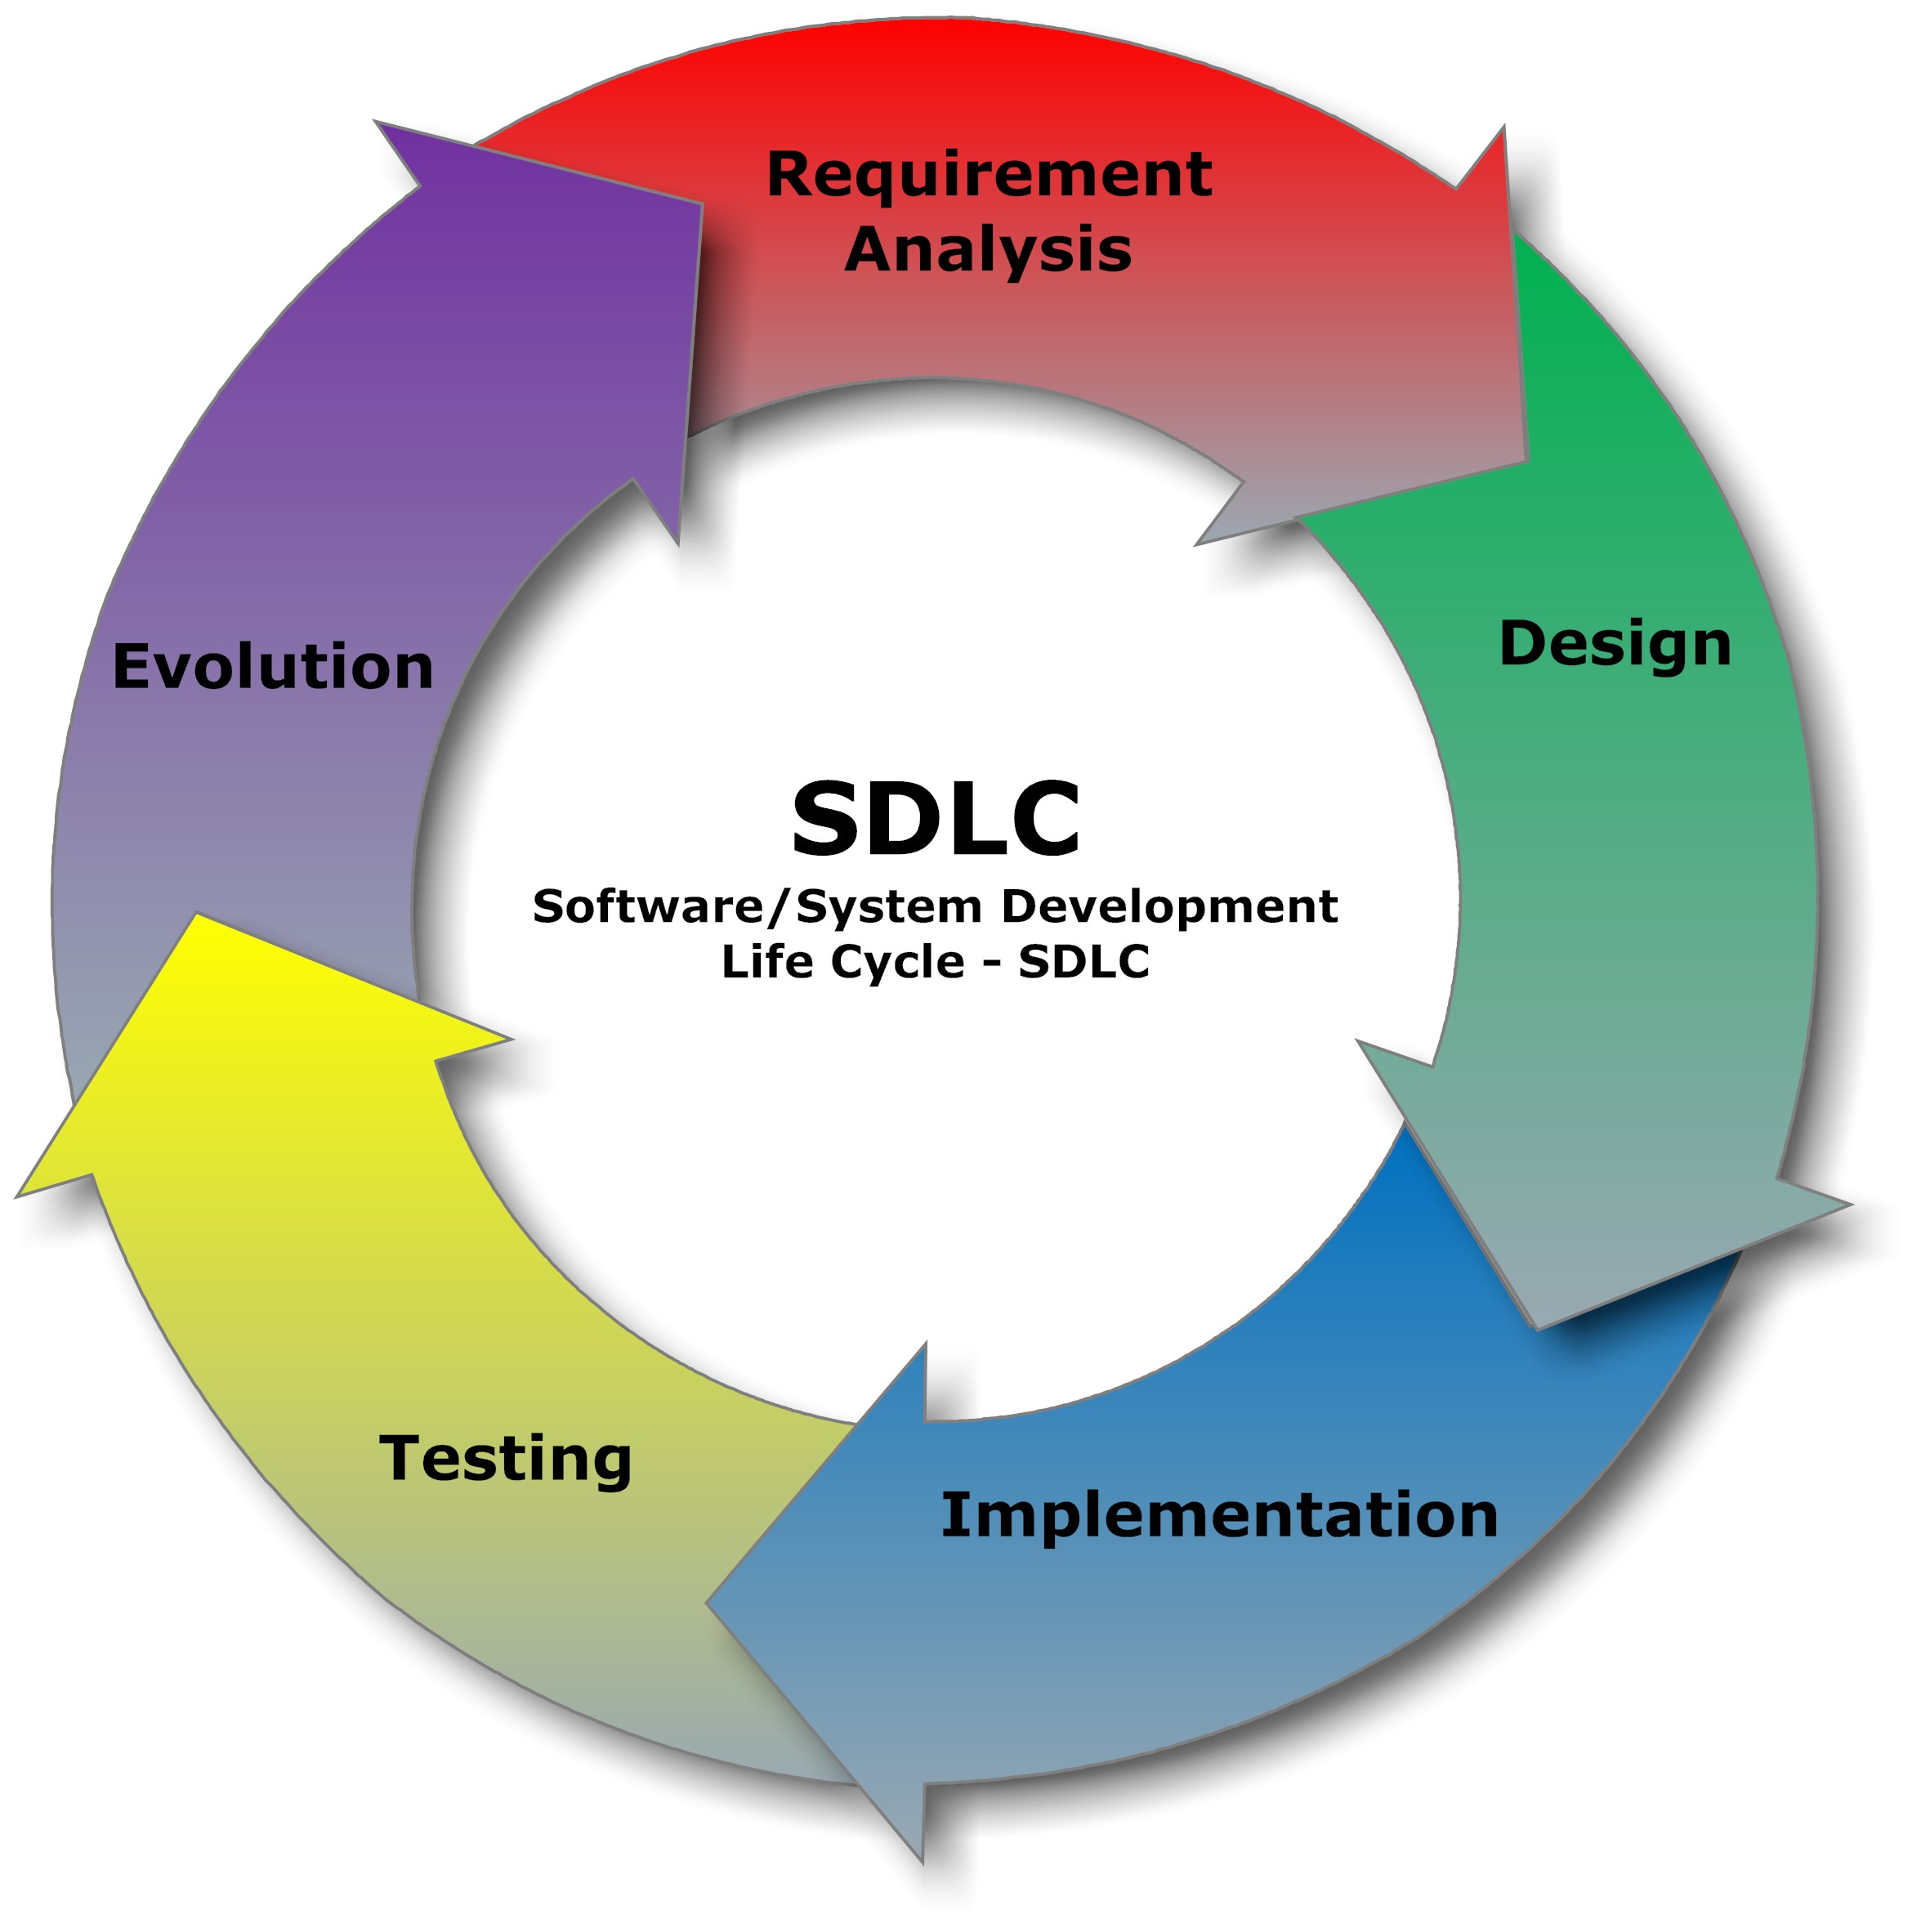 Description SDLC - Software Development Life Cycle.jpg